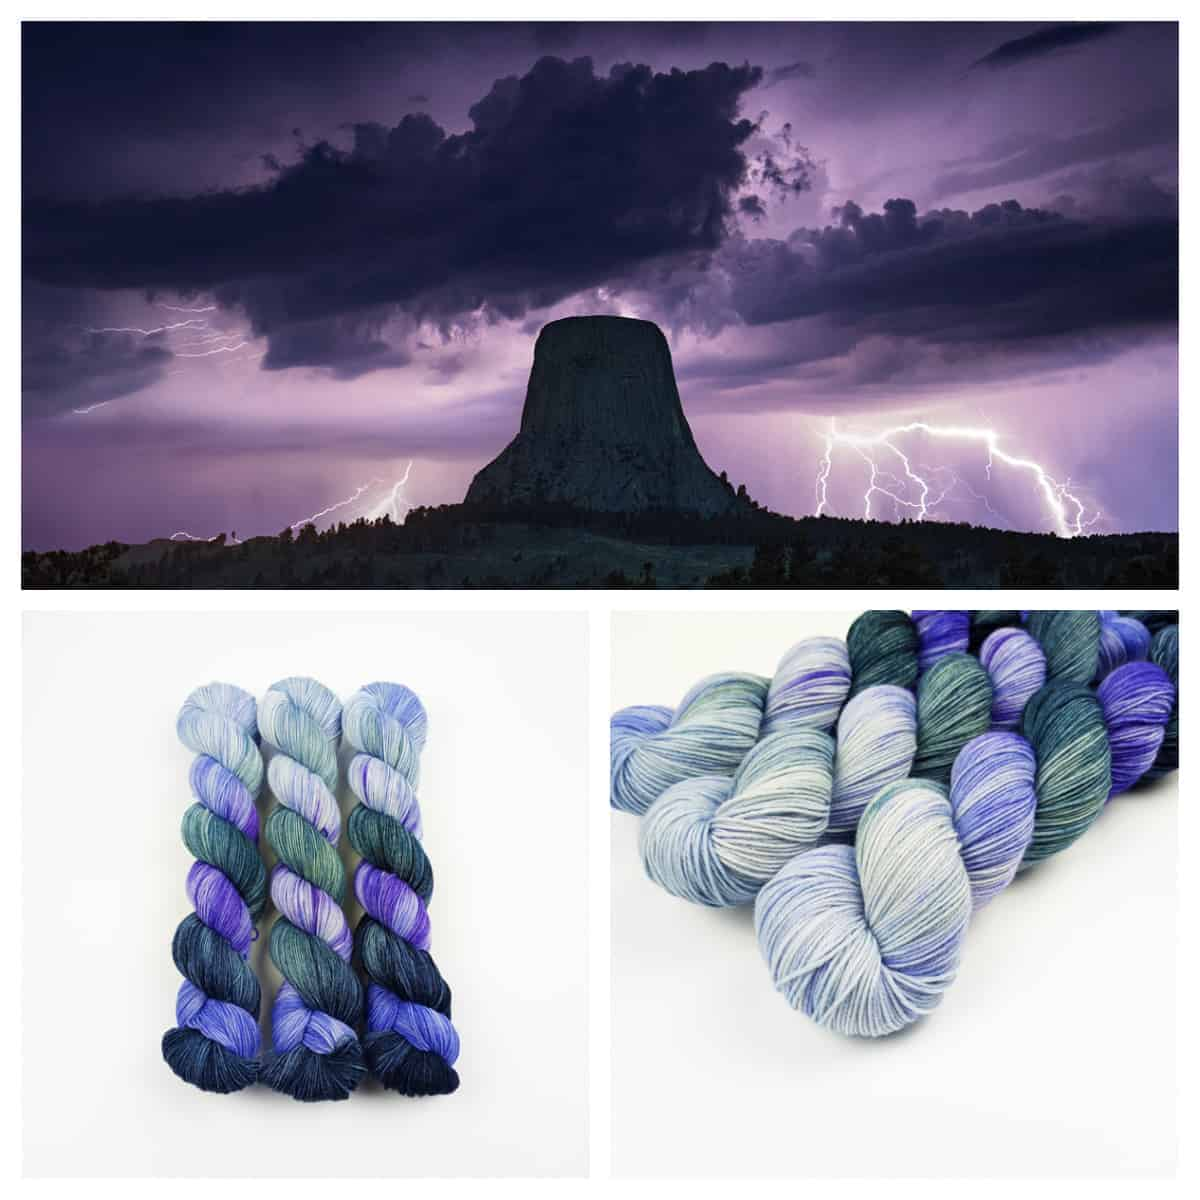 Lighting strikes Devils Tower and purple and green yarn.